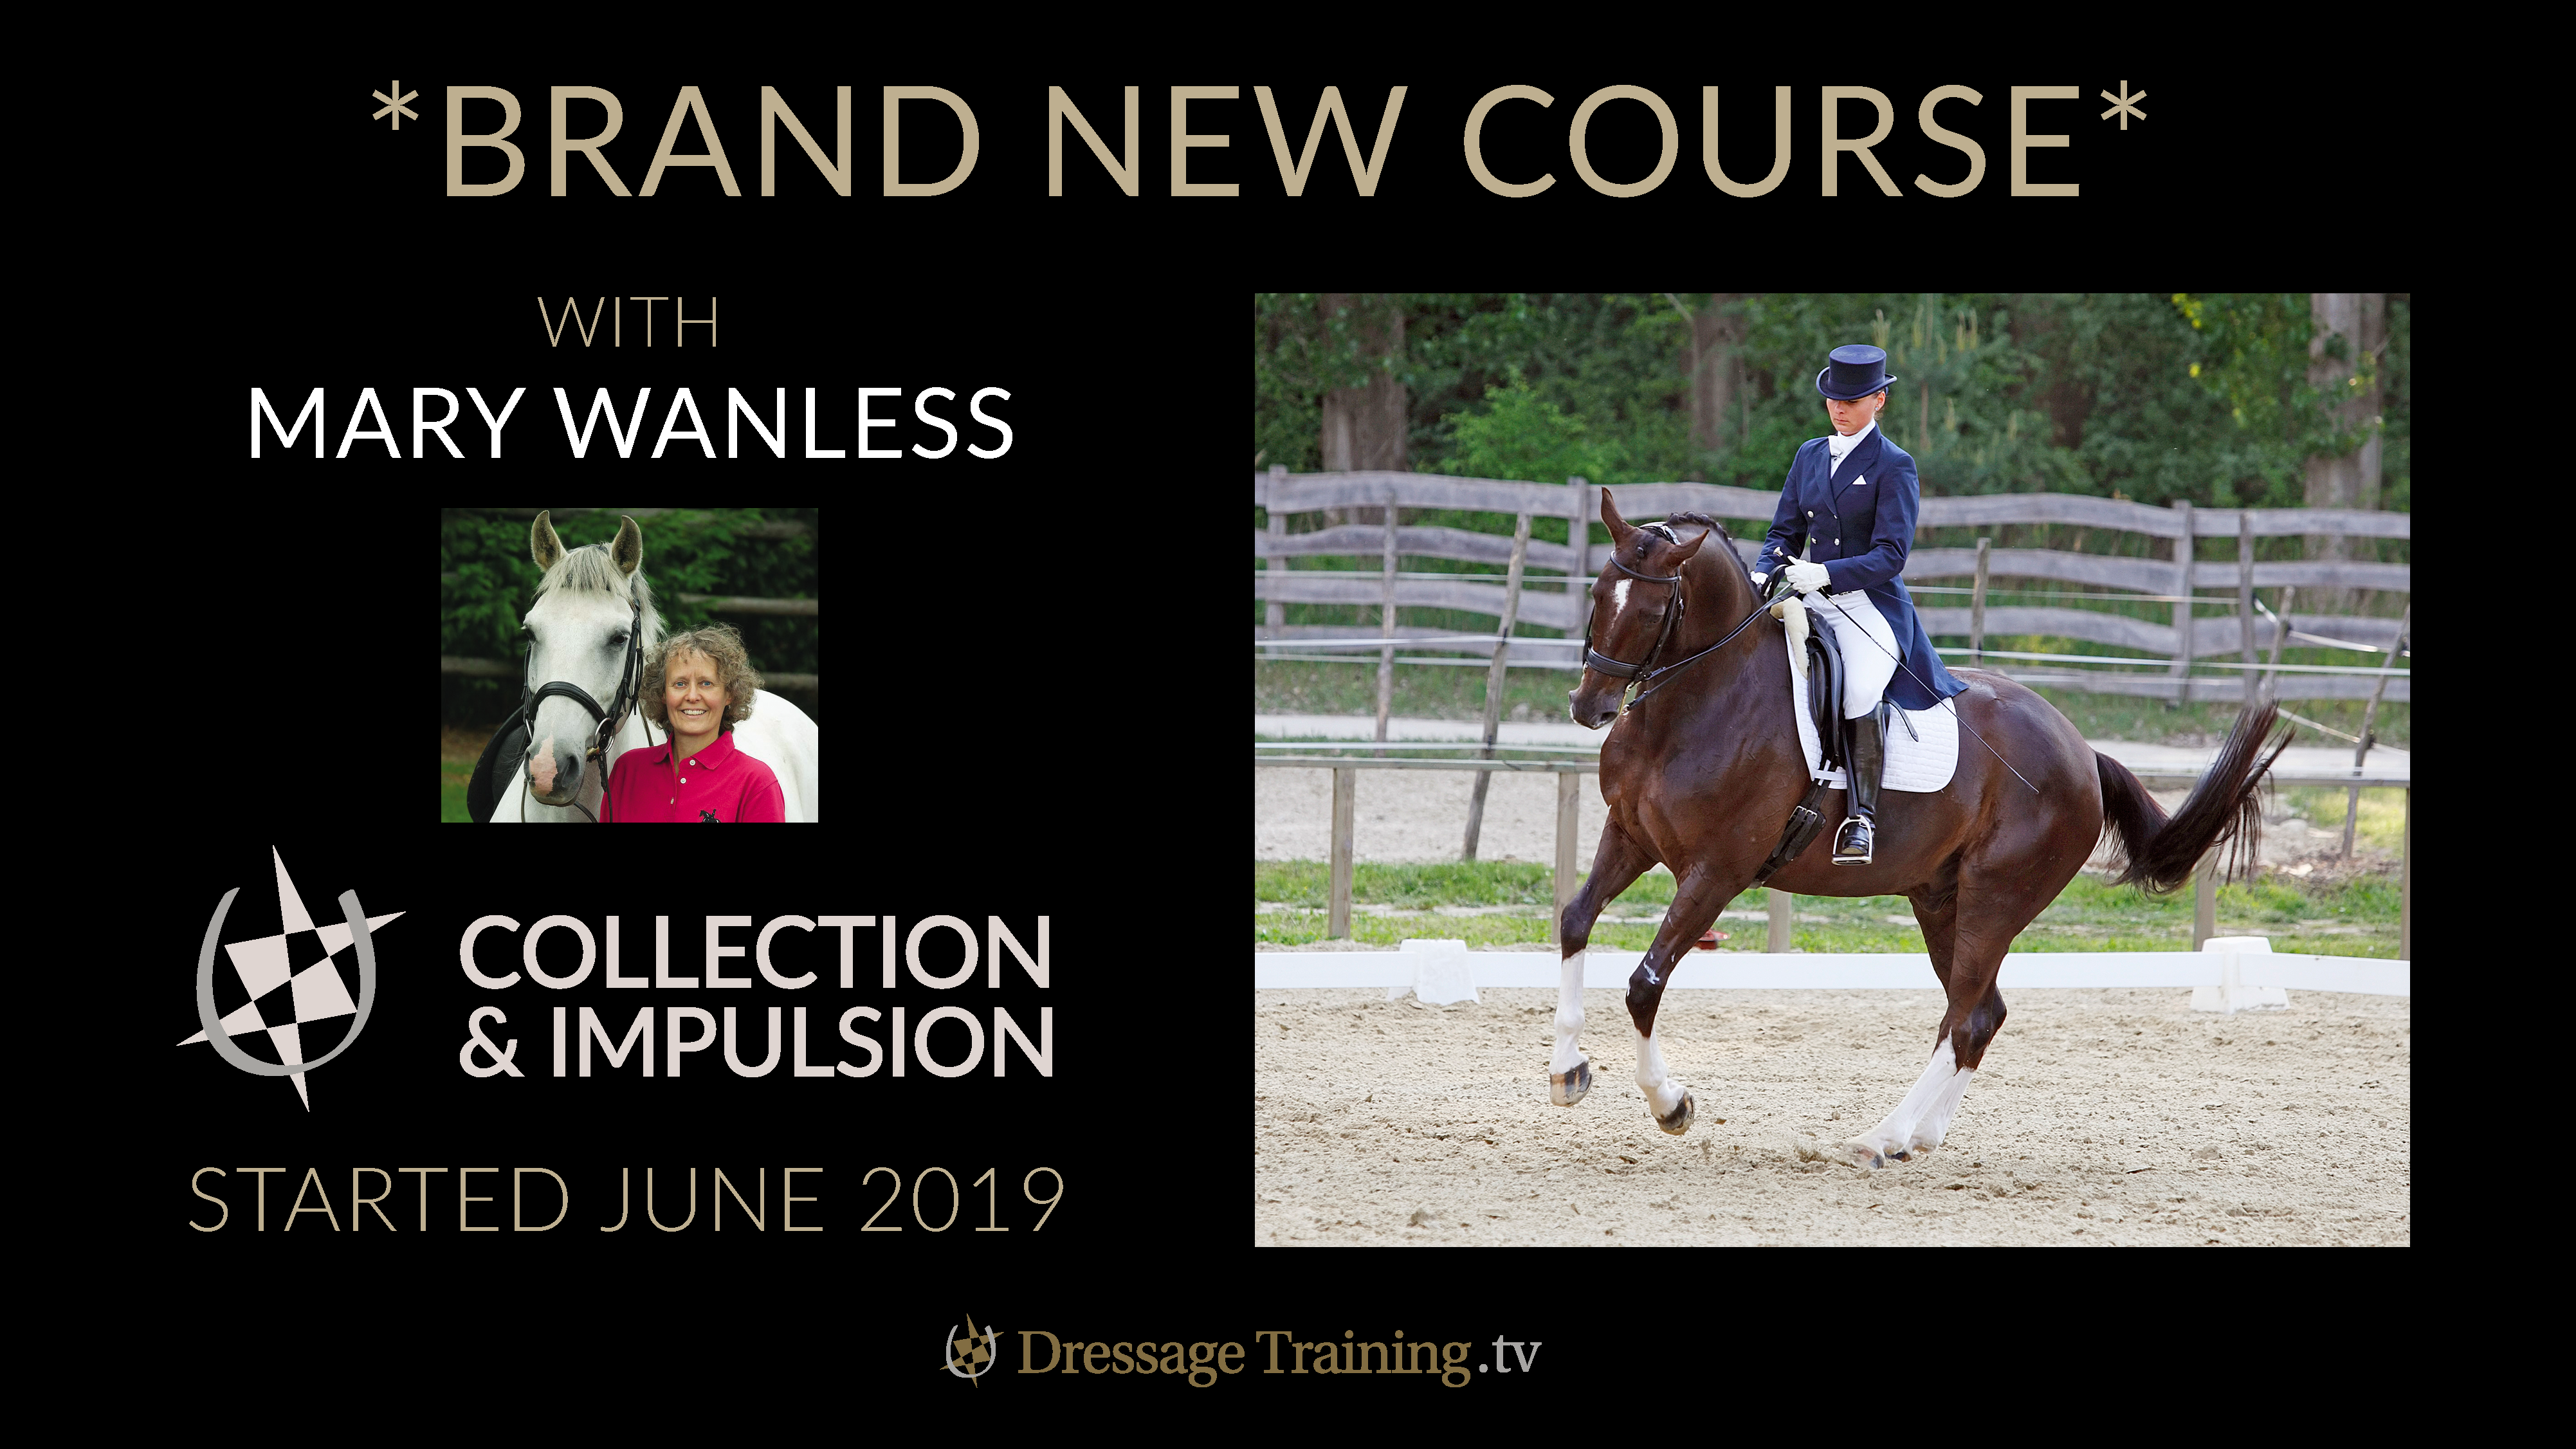 Dressage Training TV - Dressage Training For All